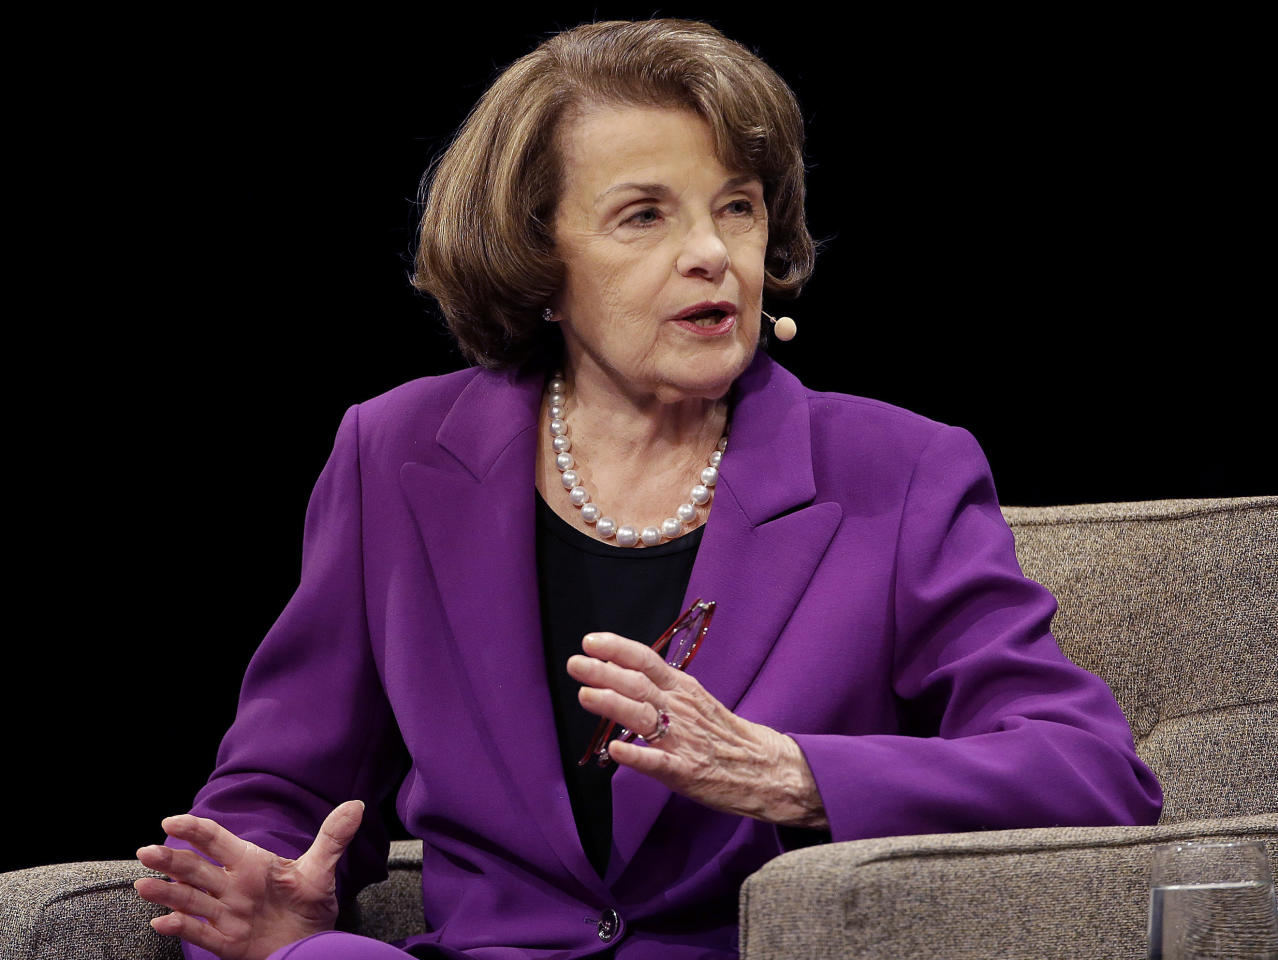 FILE - In this Aug. 29, 2017, file photo, Sen. Dianne Feinstein, D-Calif., speaks at the Commonwealth Club in San Francisco. Democrats are at war with themselves in California, where restless activists are challenging party leaders to resist all things President Donald Trump and move further left on health care, the minimum wage and populist issues. (AP Photo/Jeff Chiu, File)